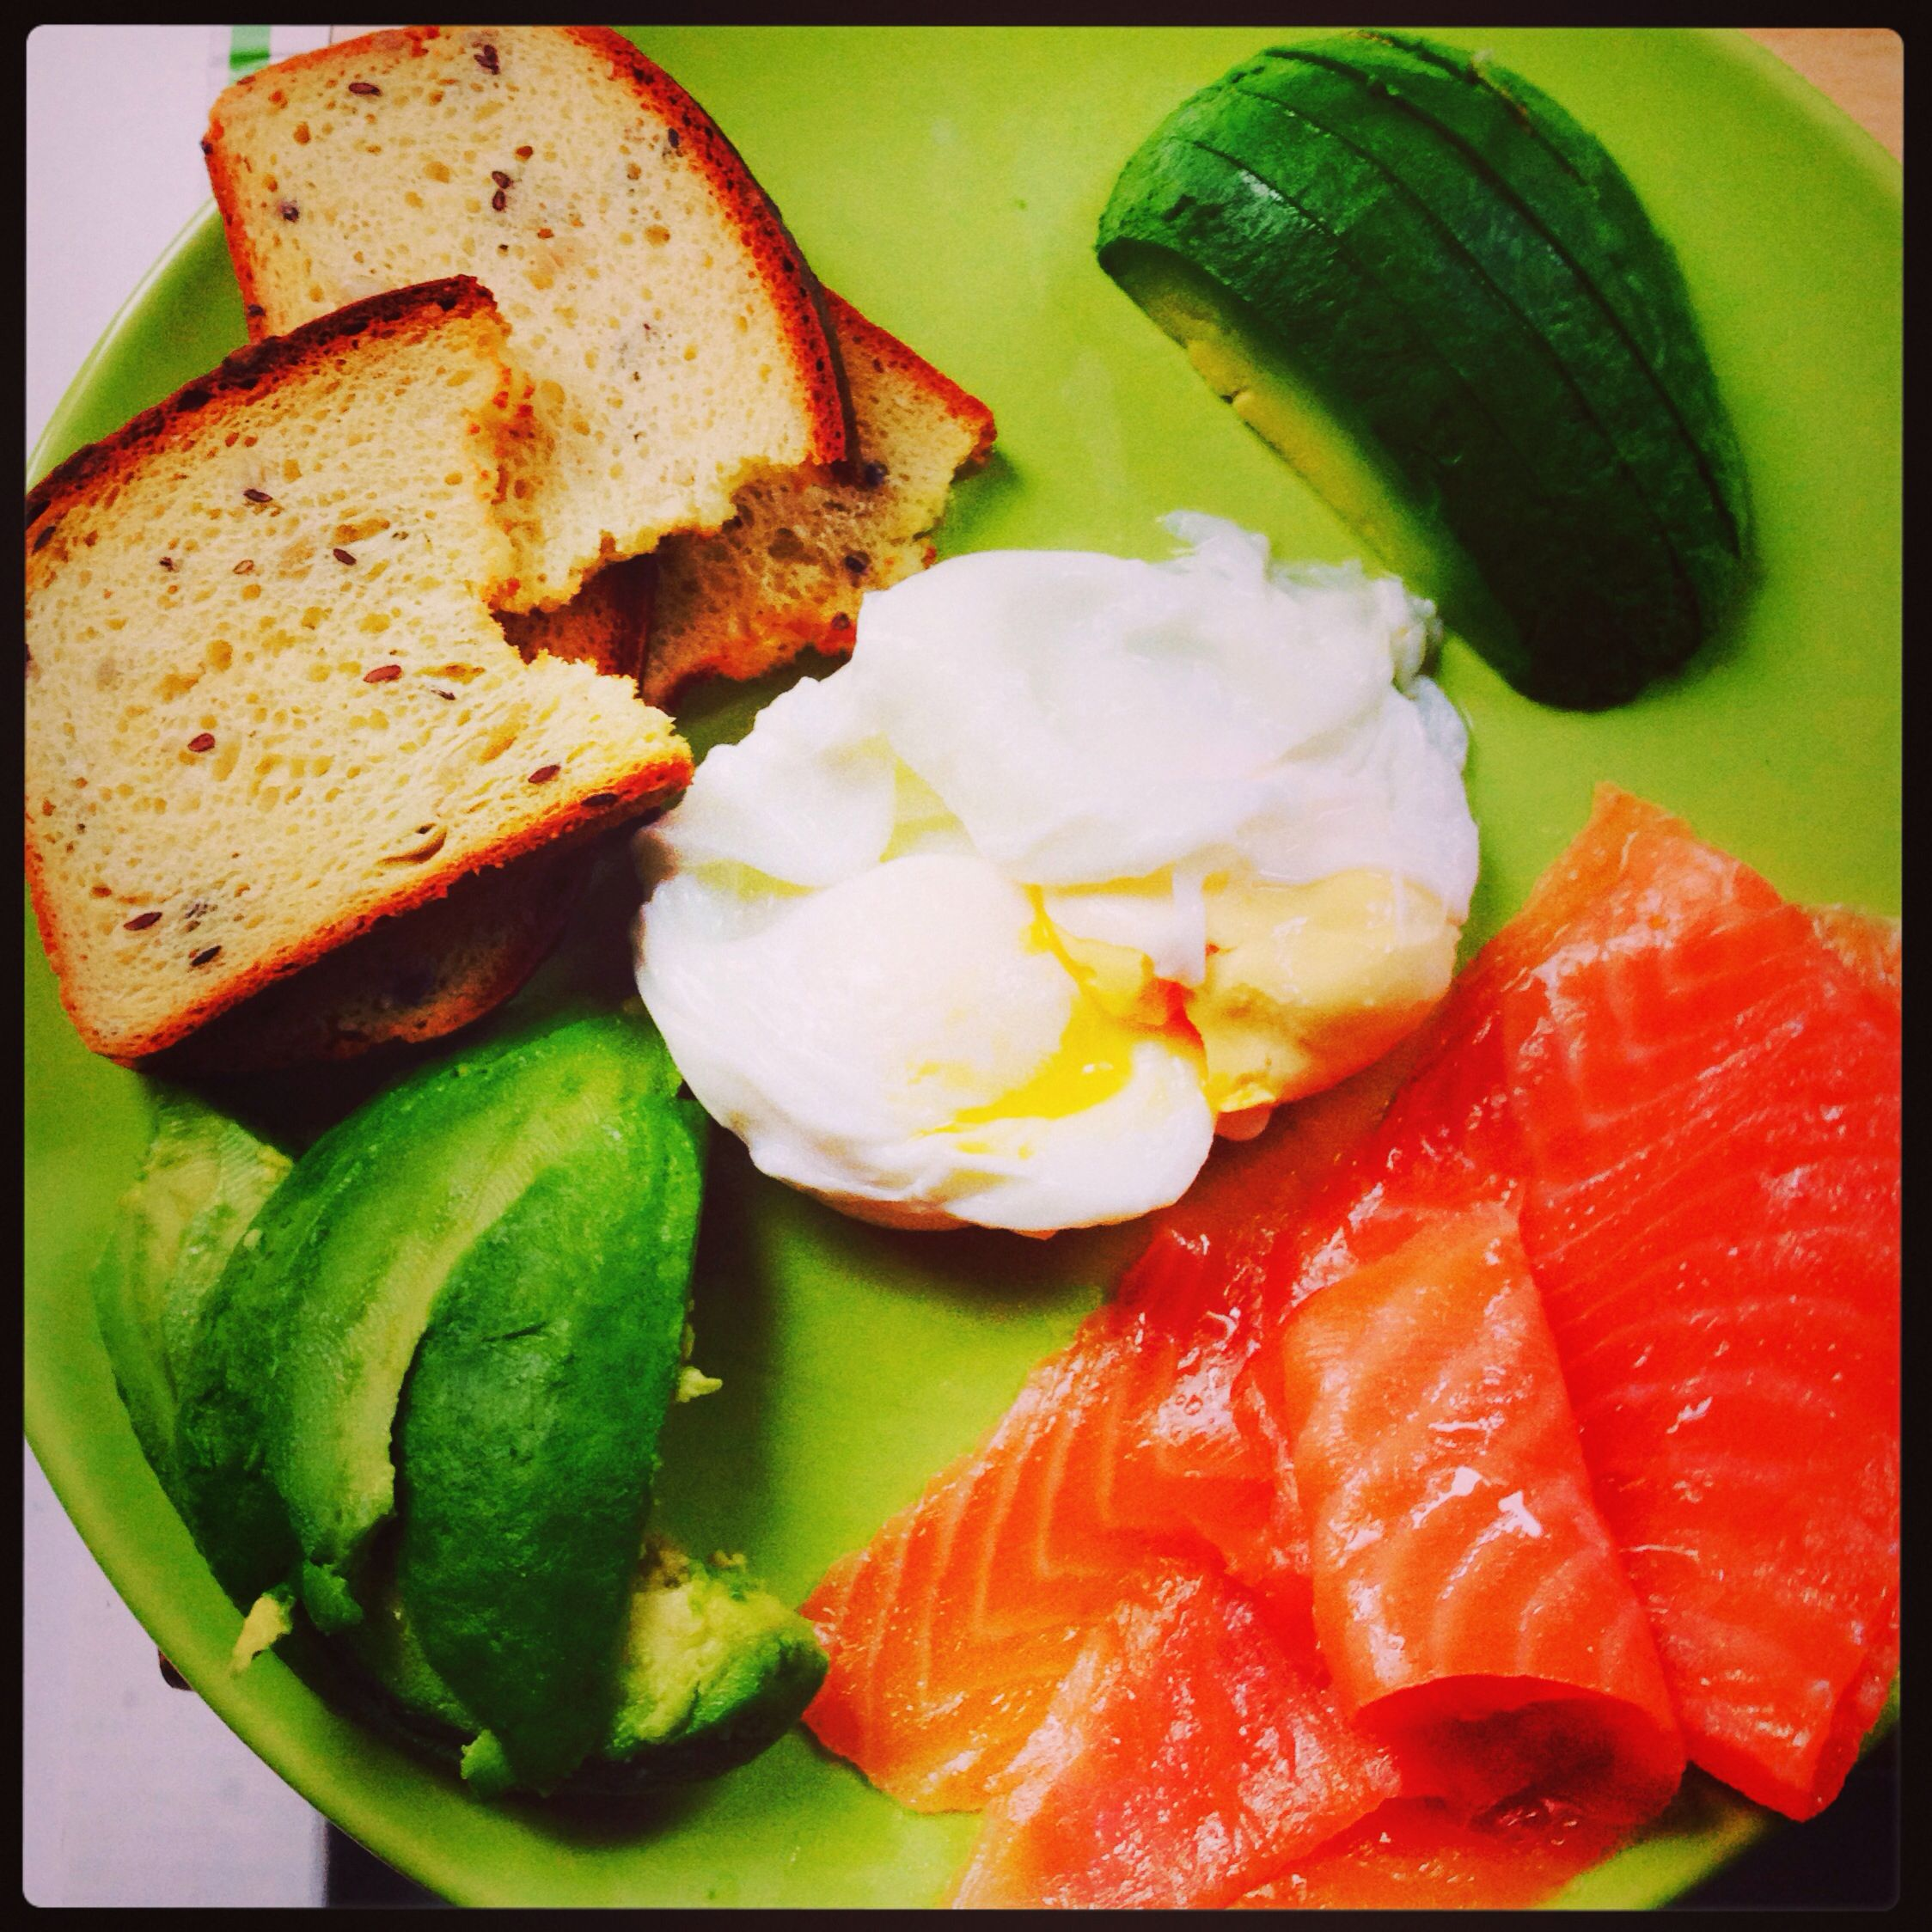 Healthy lunch: poached eggs with avocado and smoked salmon love it!!